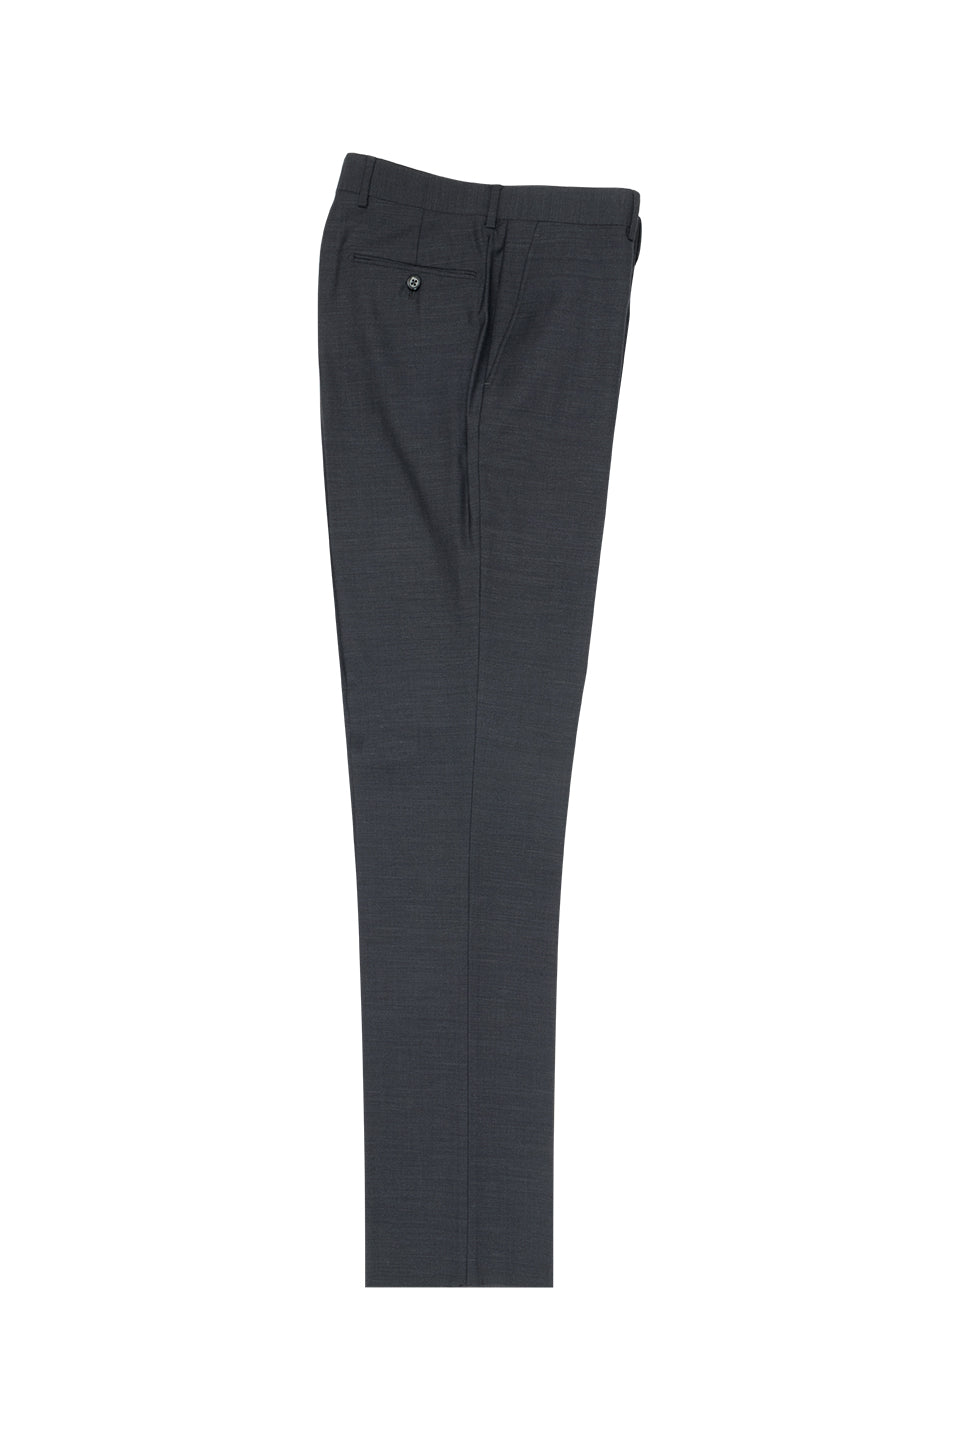 Tiglio Luxe Charcoal Gray Modern Fit Pure Wool Dress Pants 2560 TIG1010 Flat Front